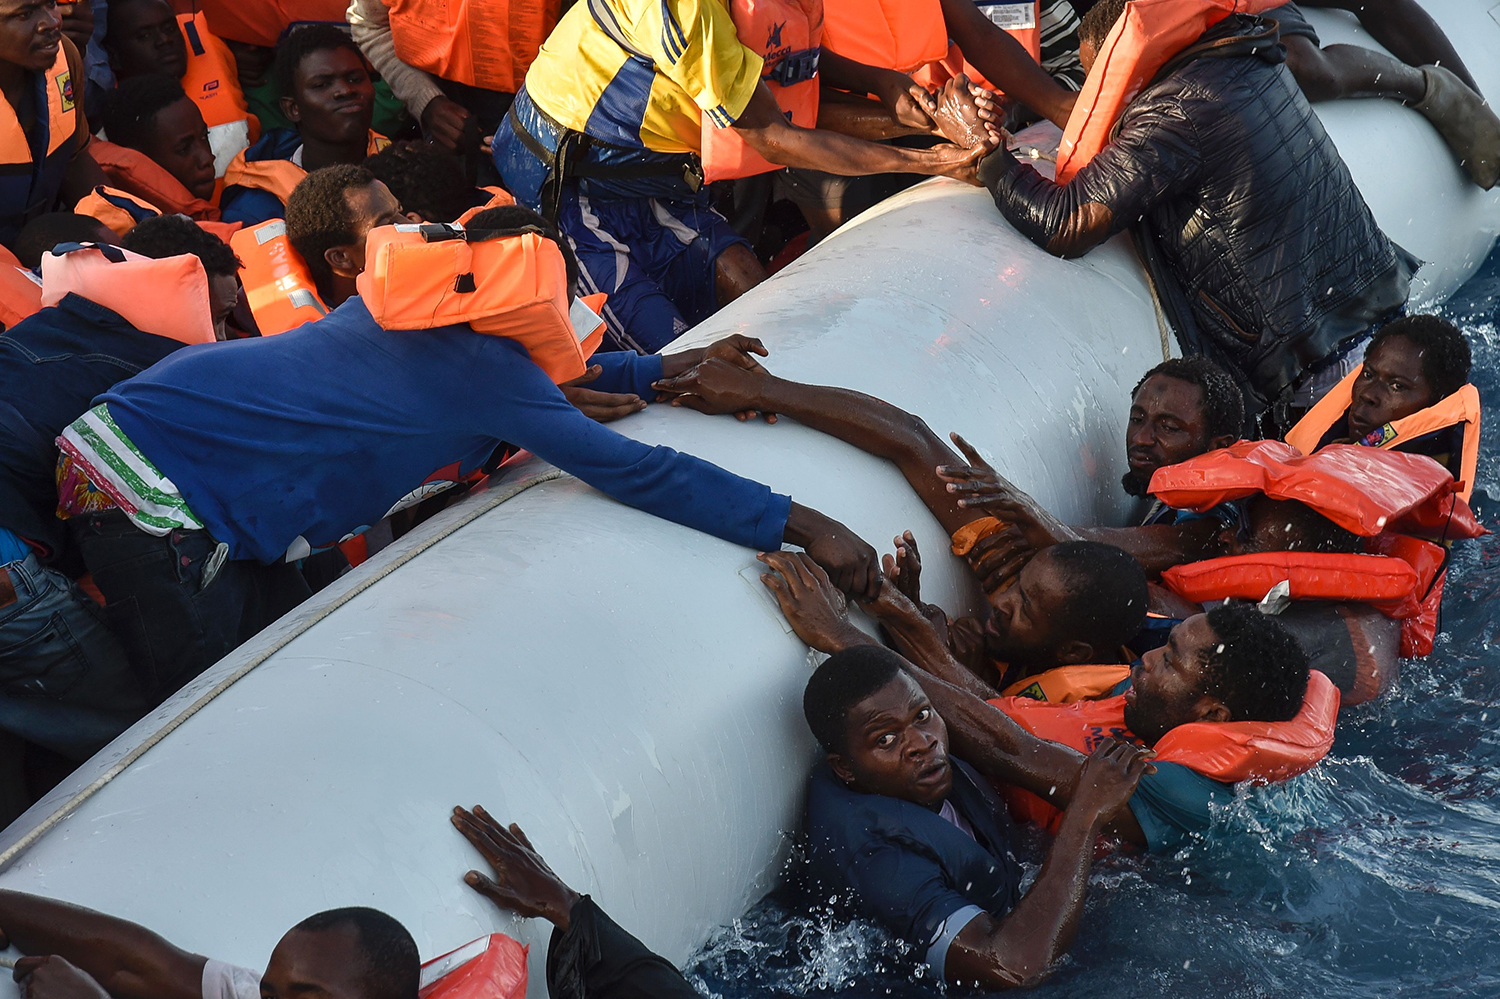 Migrants and refugees panic as they fall in the water during a rescue operation of the Topaz Responder rescue ship run by Maltese NGO Moas and Italian Red Cross, off the Libyan coast in the Mediterranean Sea, on November 3, 2016. / AFP PHOTO / ANDREAS SOLARO / TT / kod 444